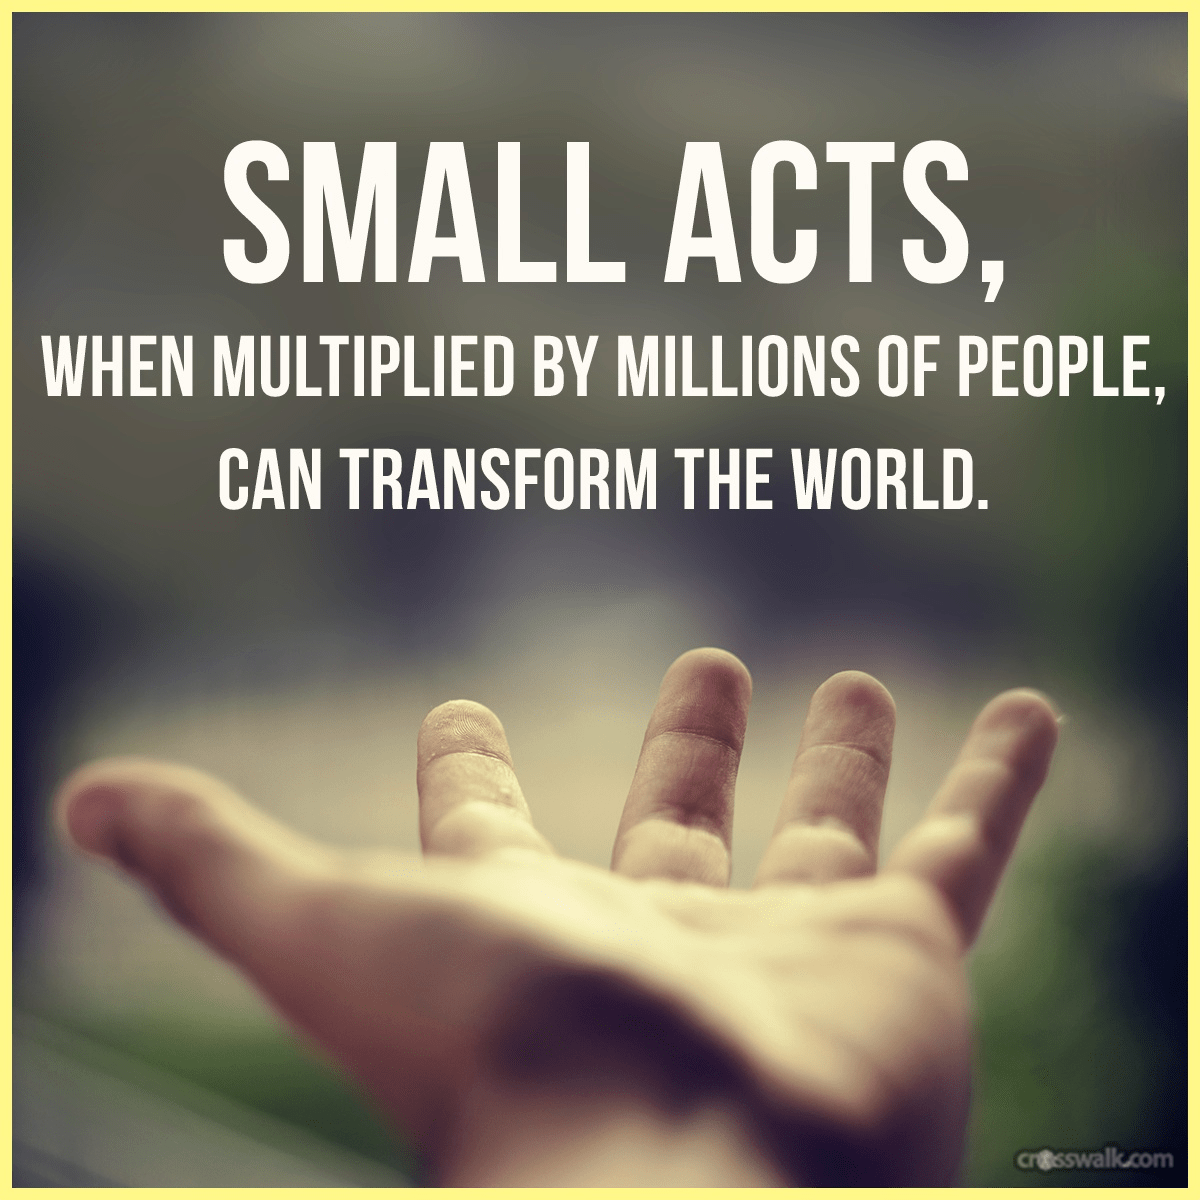 Small Acts Can Transform the World